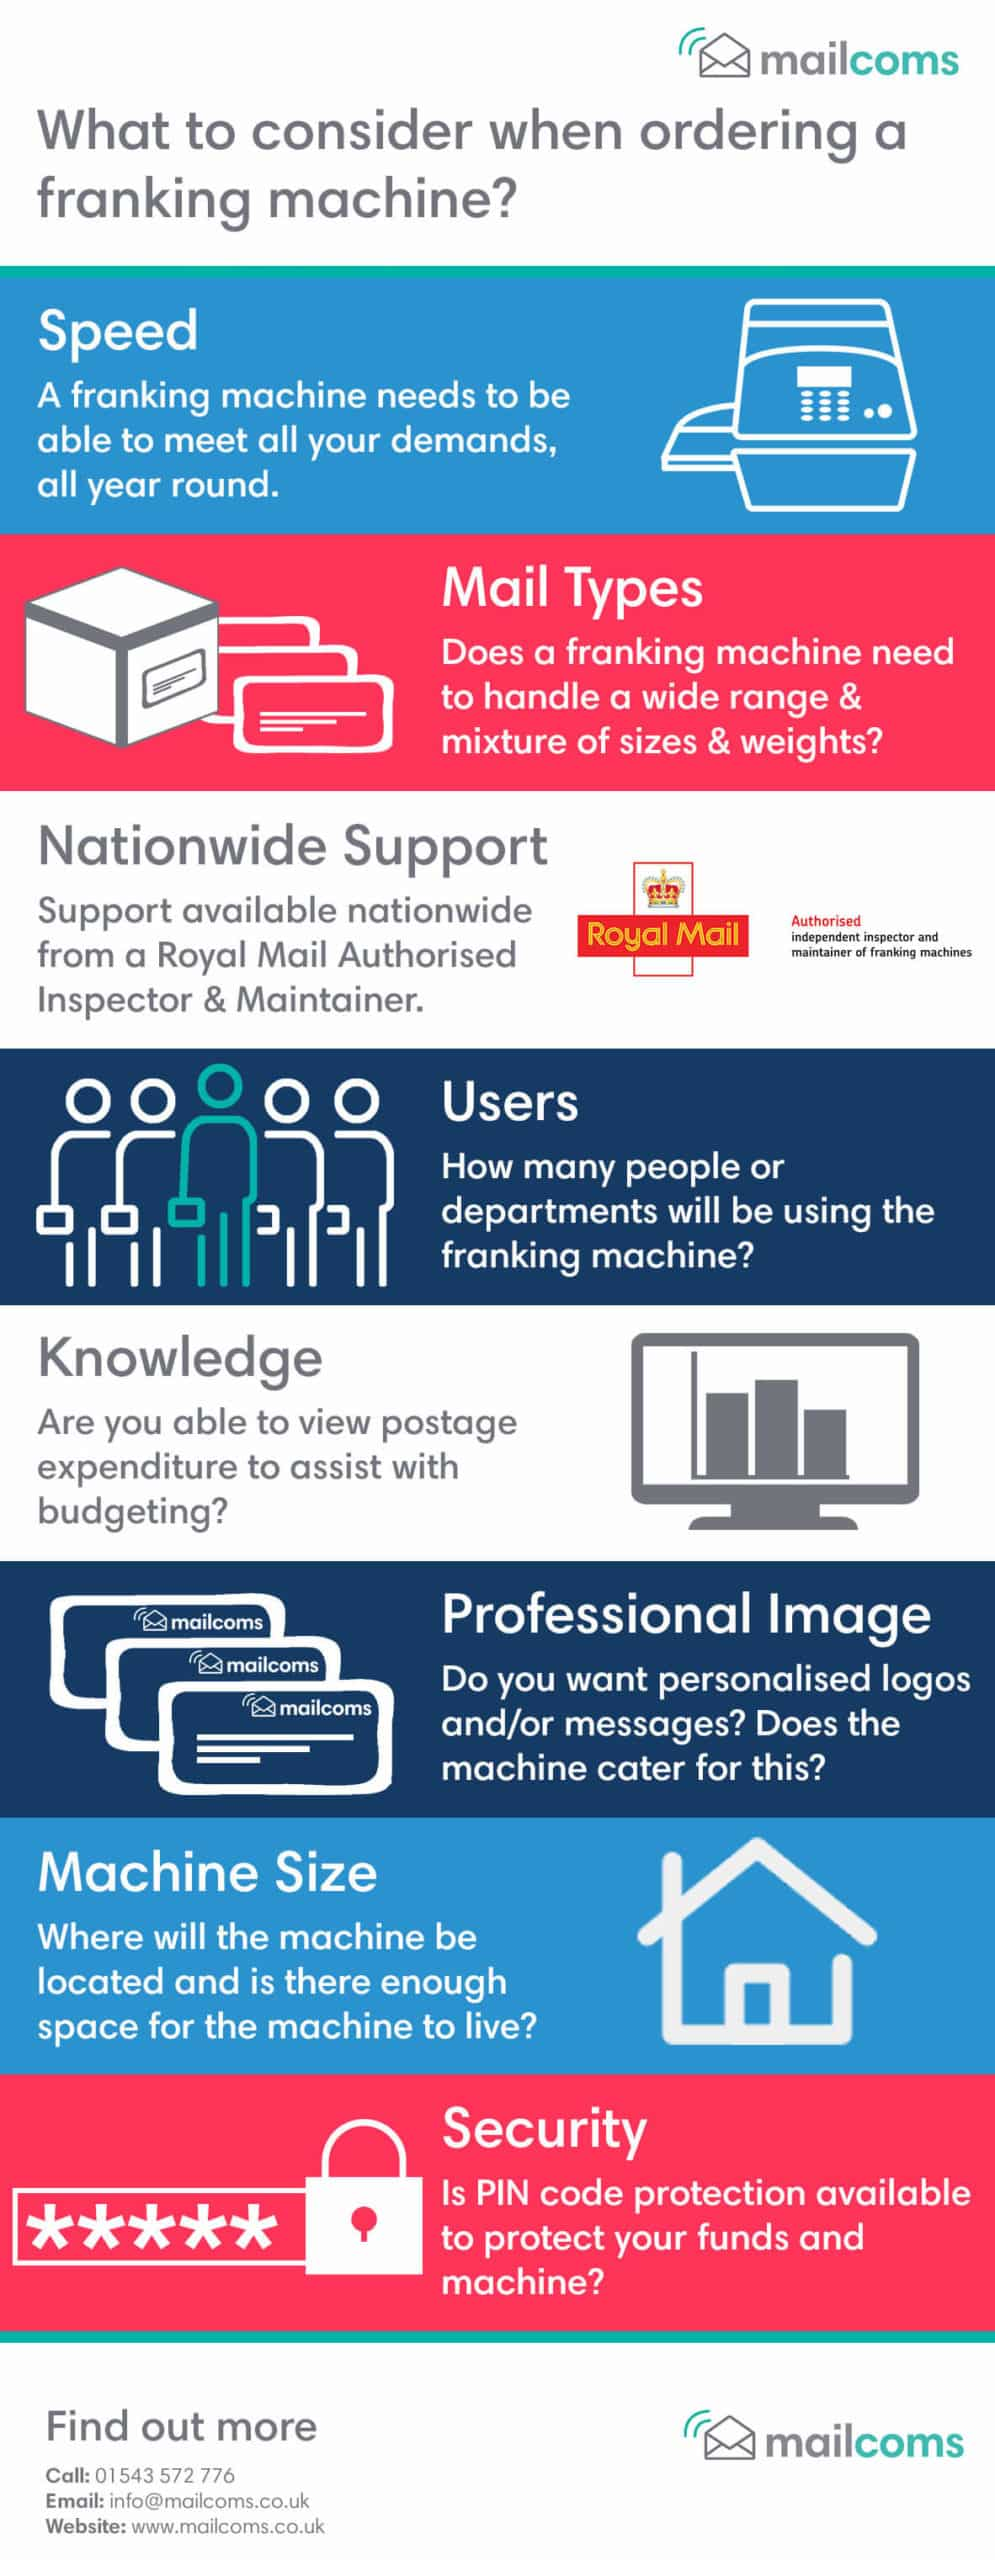 What To Consider When Ordering A Franking Machine Infographic